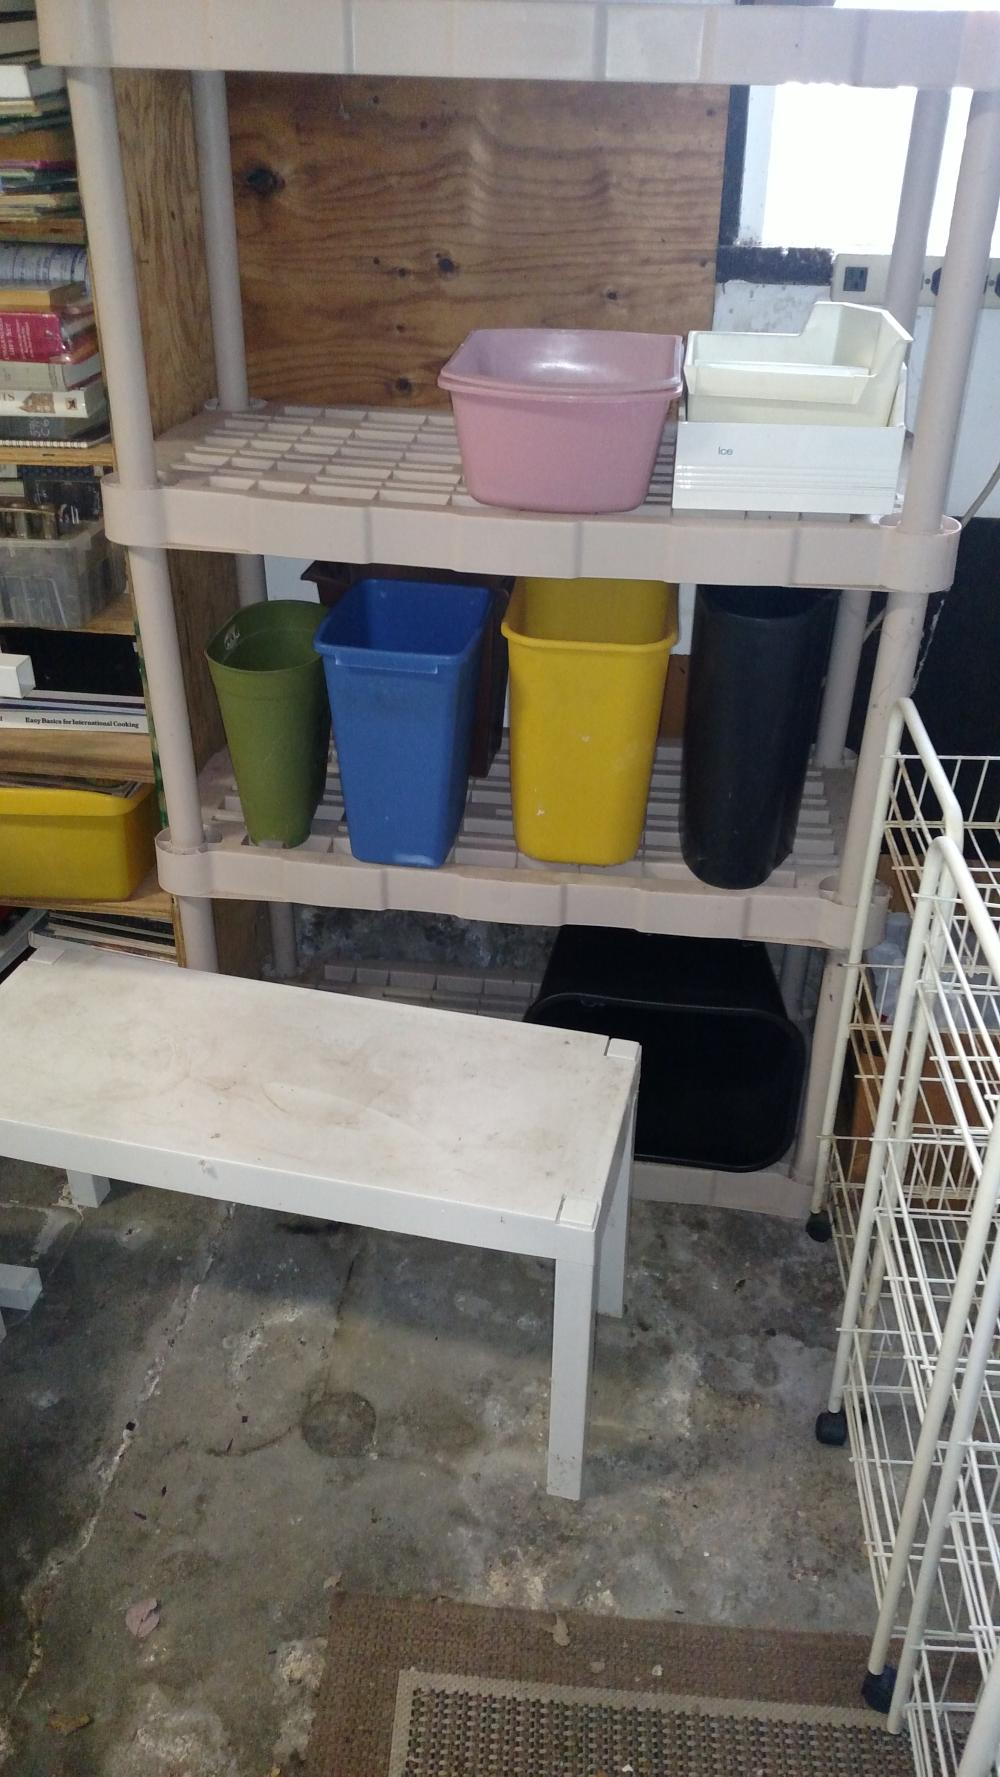 plastic shelf and contents-- books, binders, plastic cans- misc